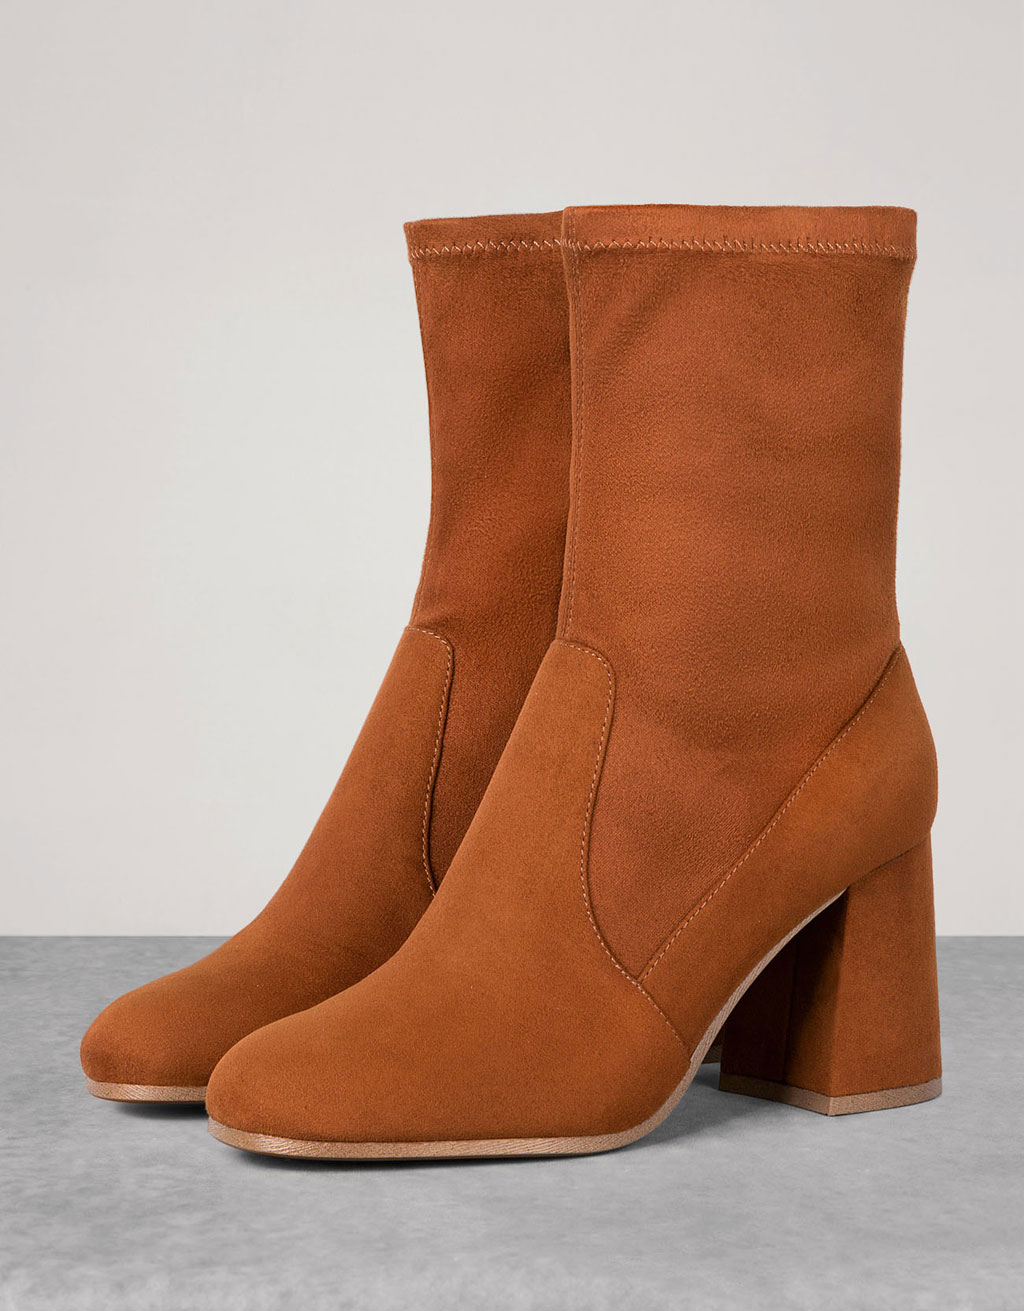 Heeled ankle boots with fitted bootleg